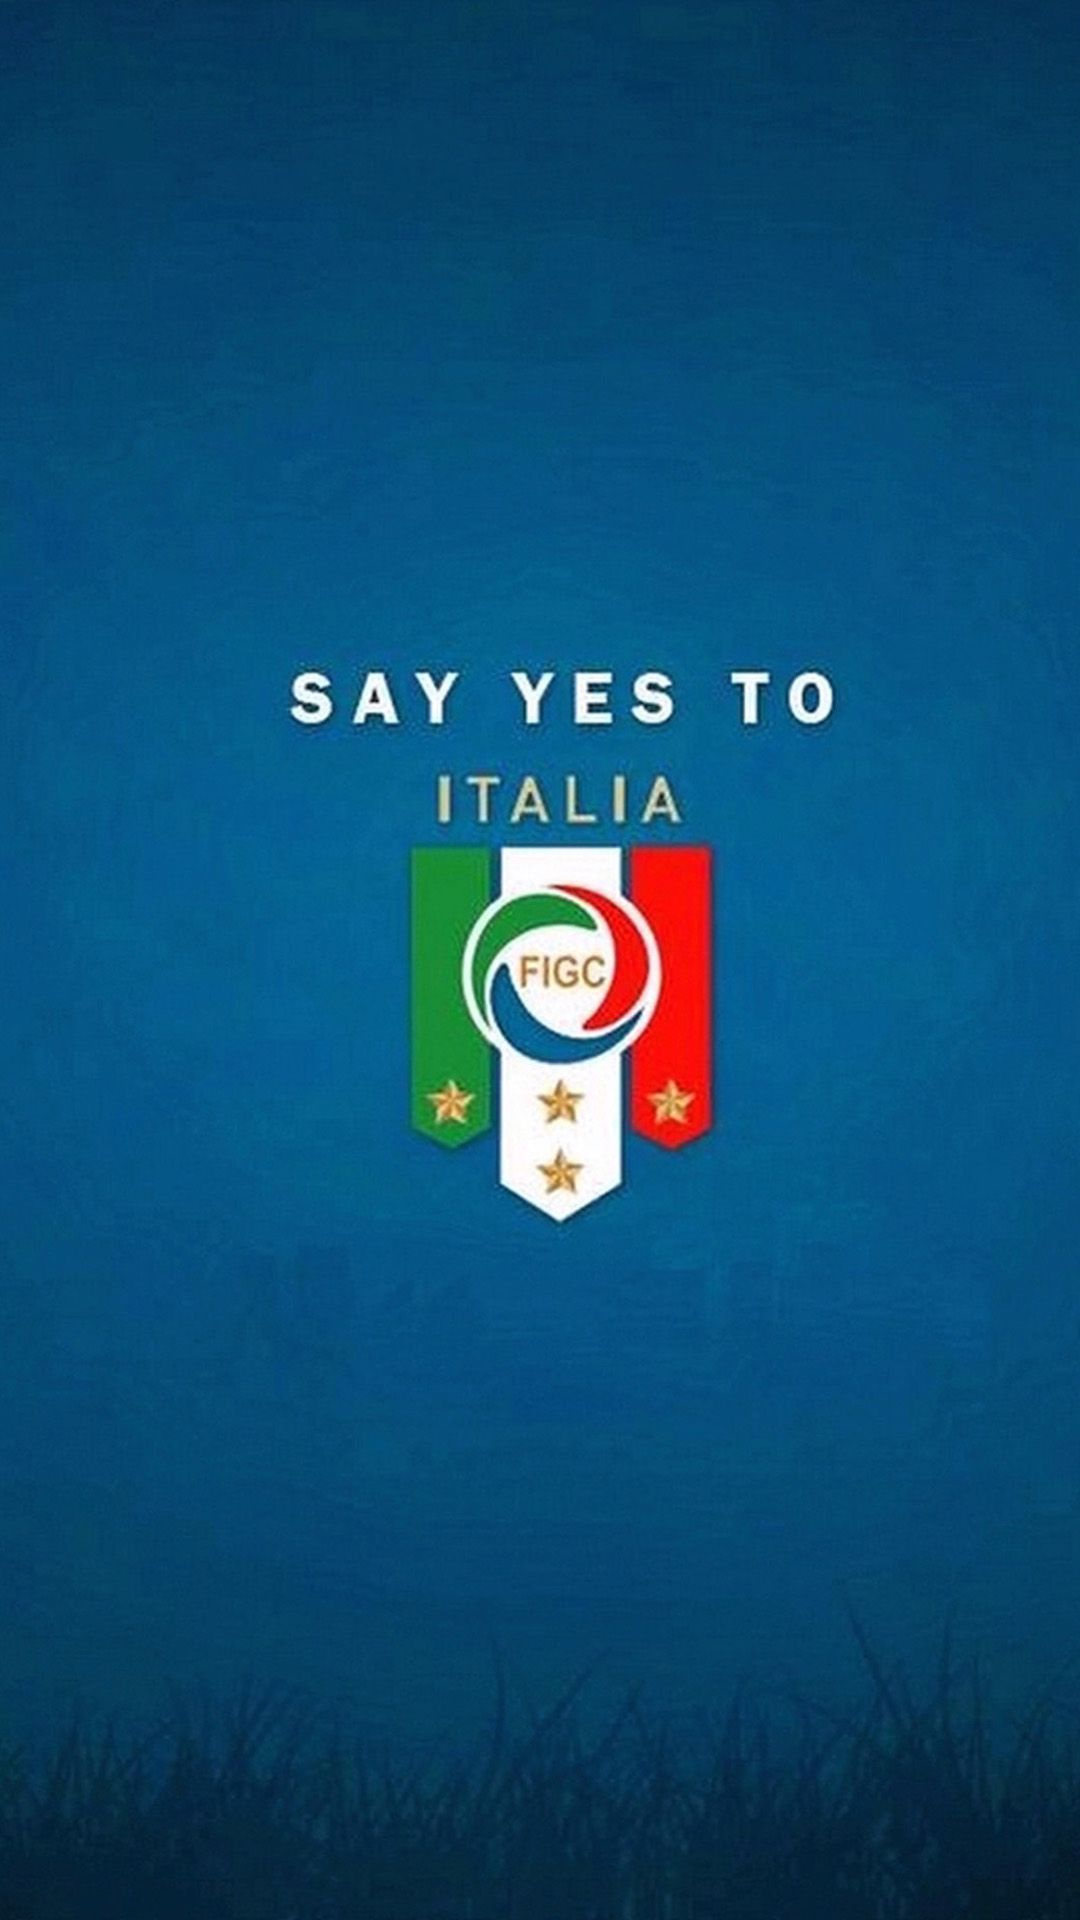 say yes to italia htc one m8 - best htc one wallpapers | htc one